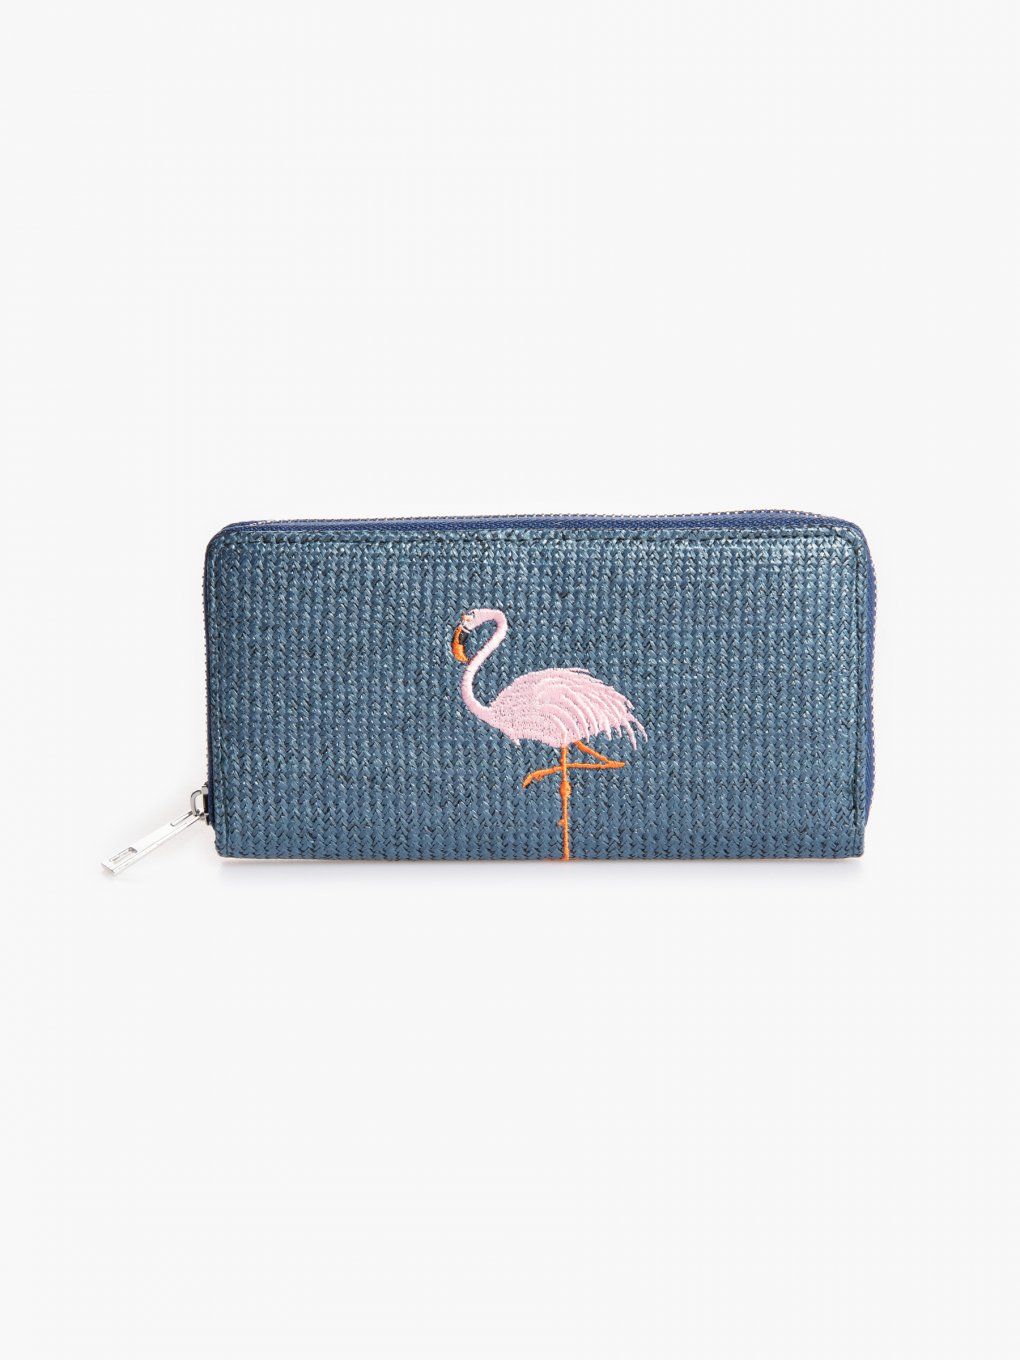 Wallet with embroidery